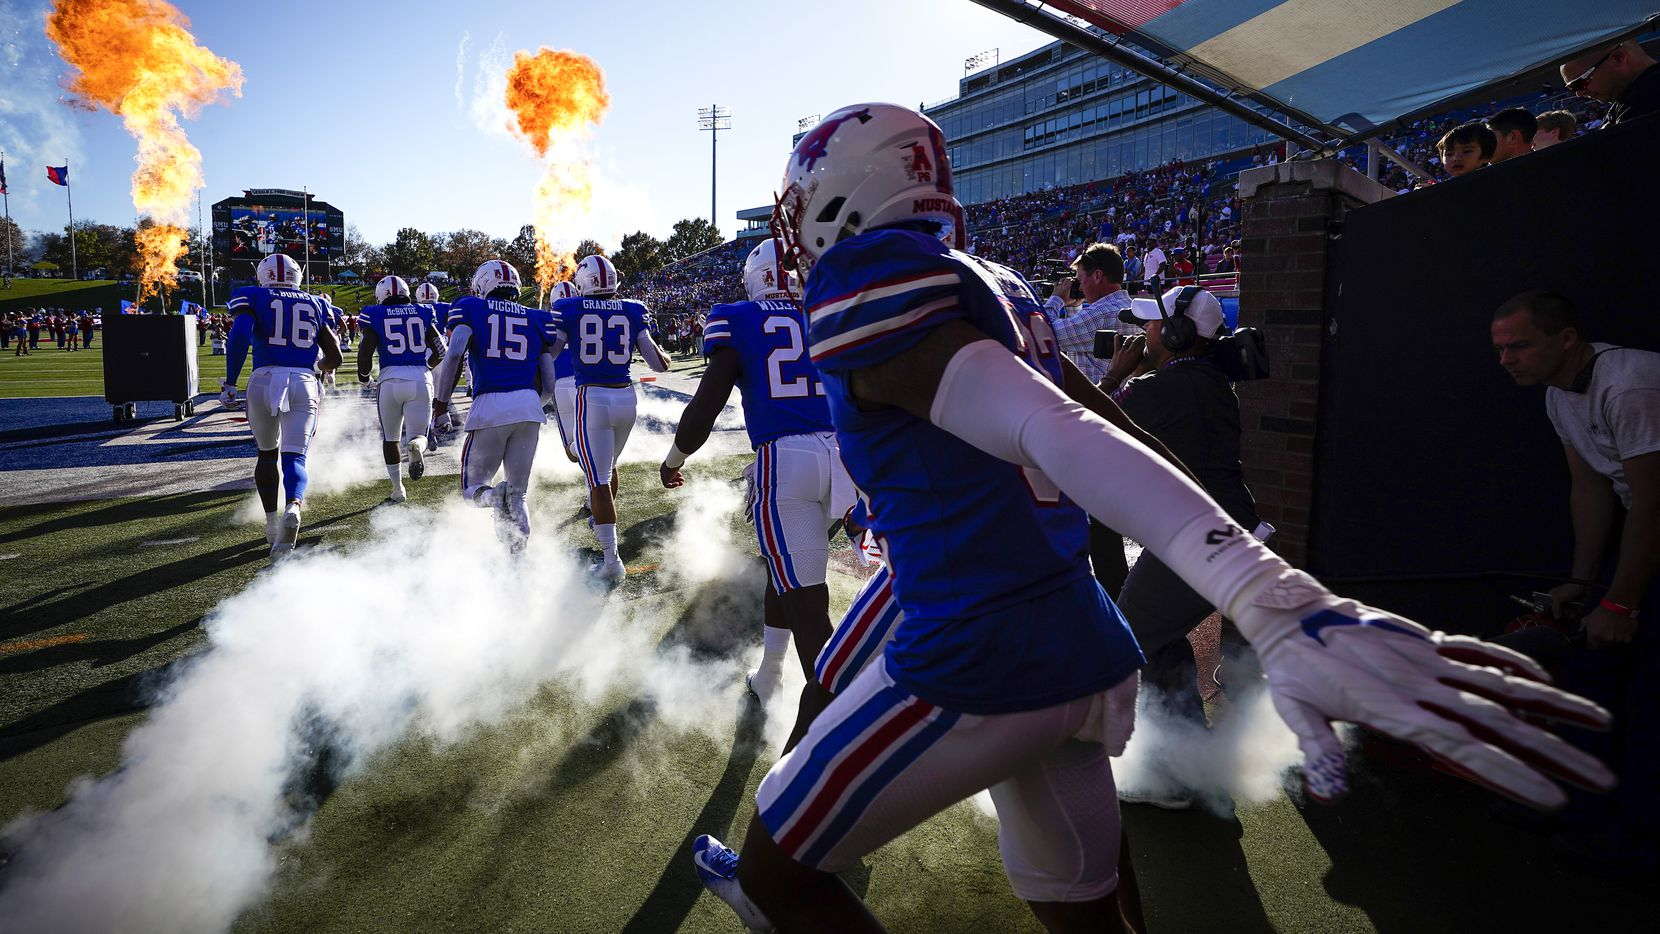 SMU player take the field to face Tulane in an NCAA football game at Ford Stadium on Saturday, Nov. 30, 2019, in Dallas.